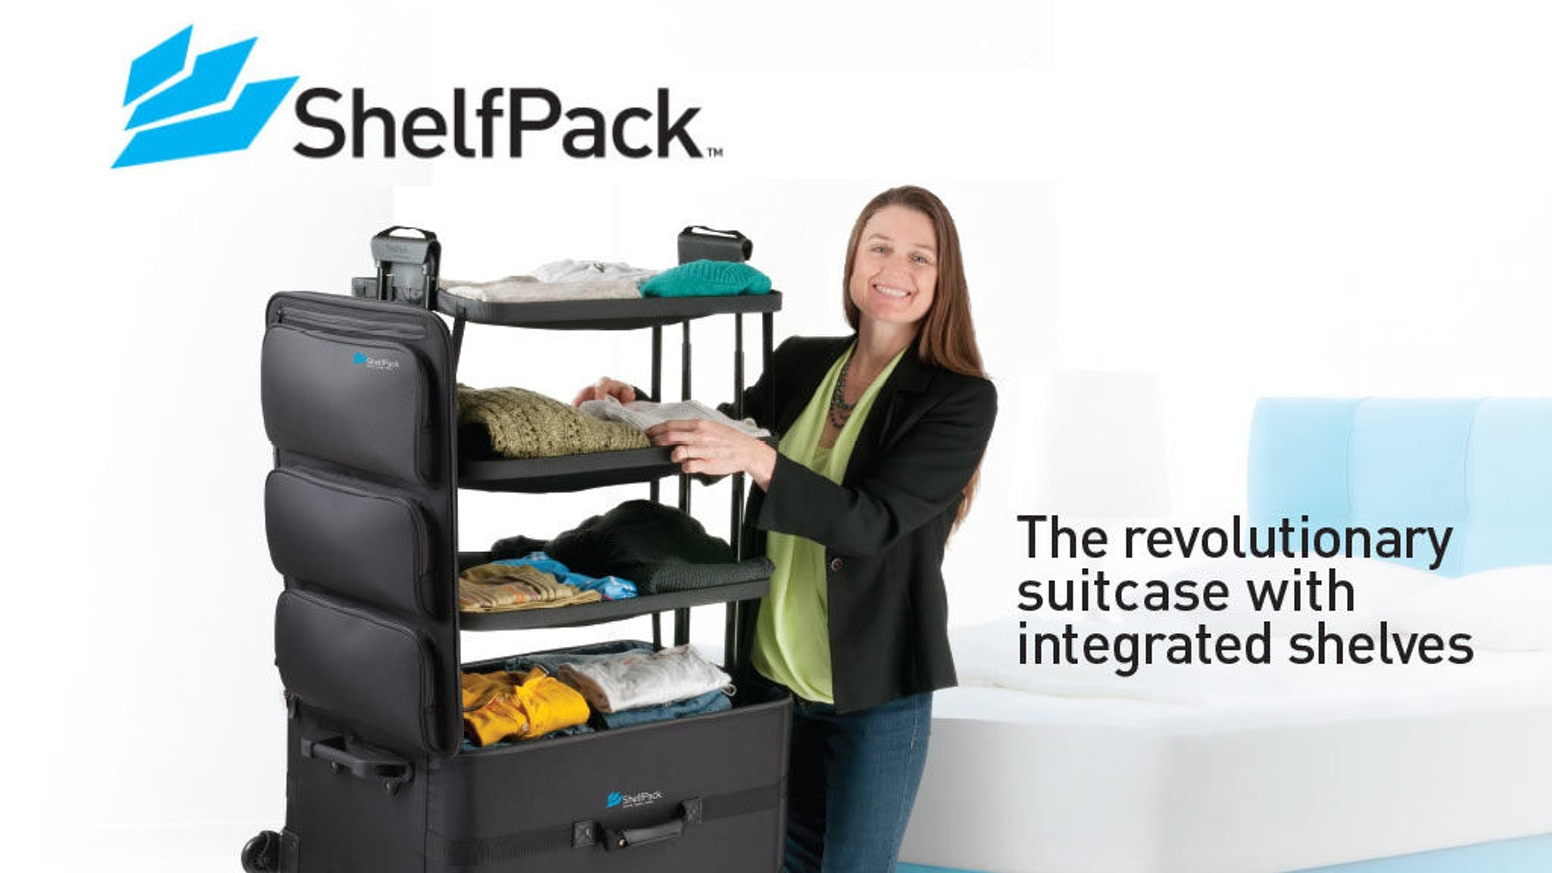 ShelfPack- the innovative new luggage with shelves that makes all your gear visible and accessible.